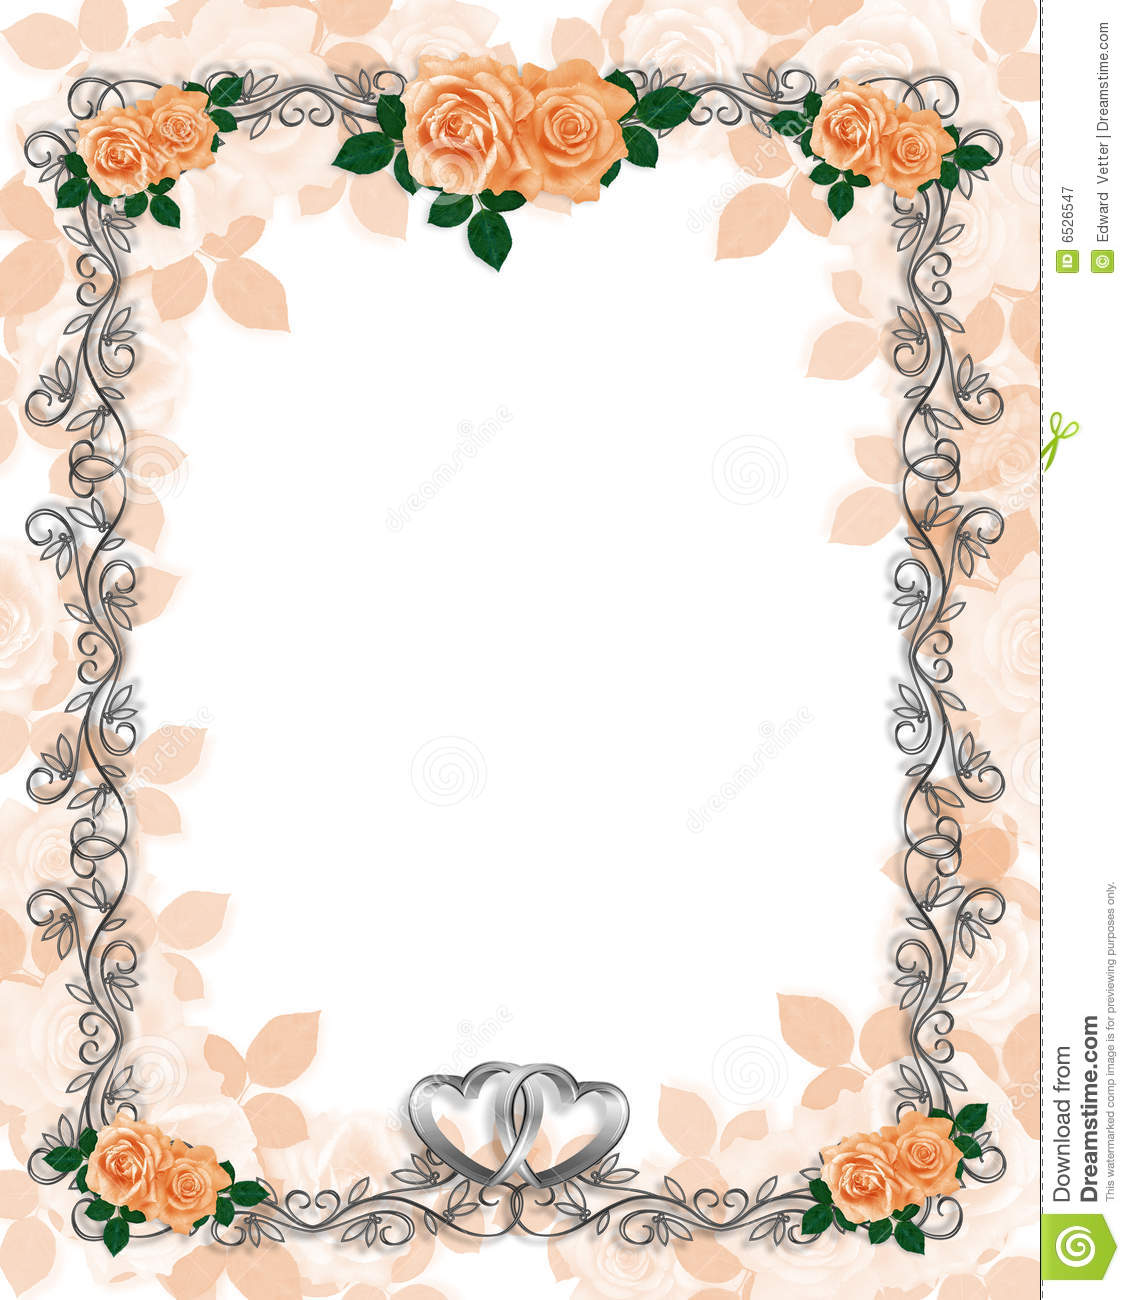 Roses template wedding invitation peach stock illustration for Wedding invitation page borders free download